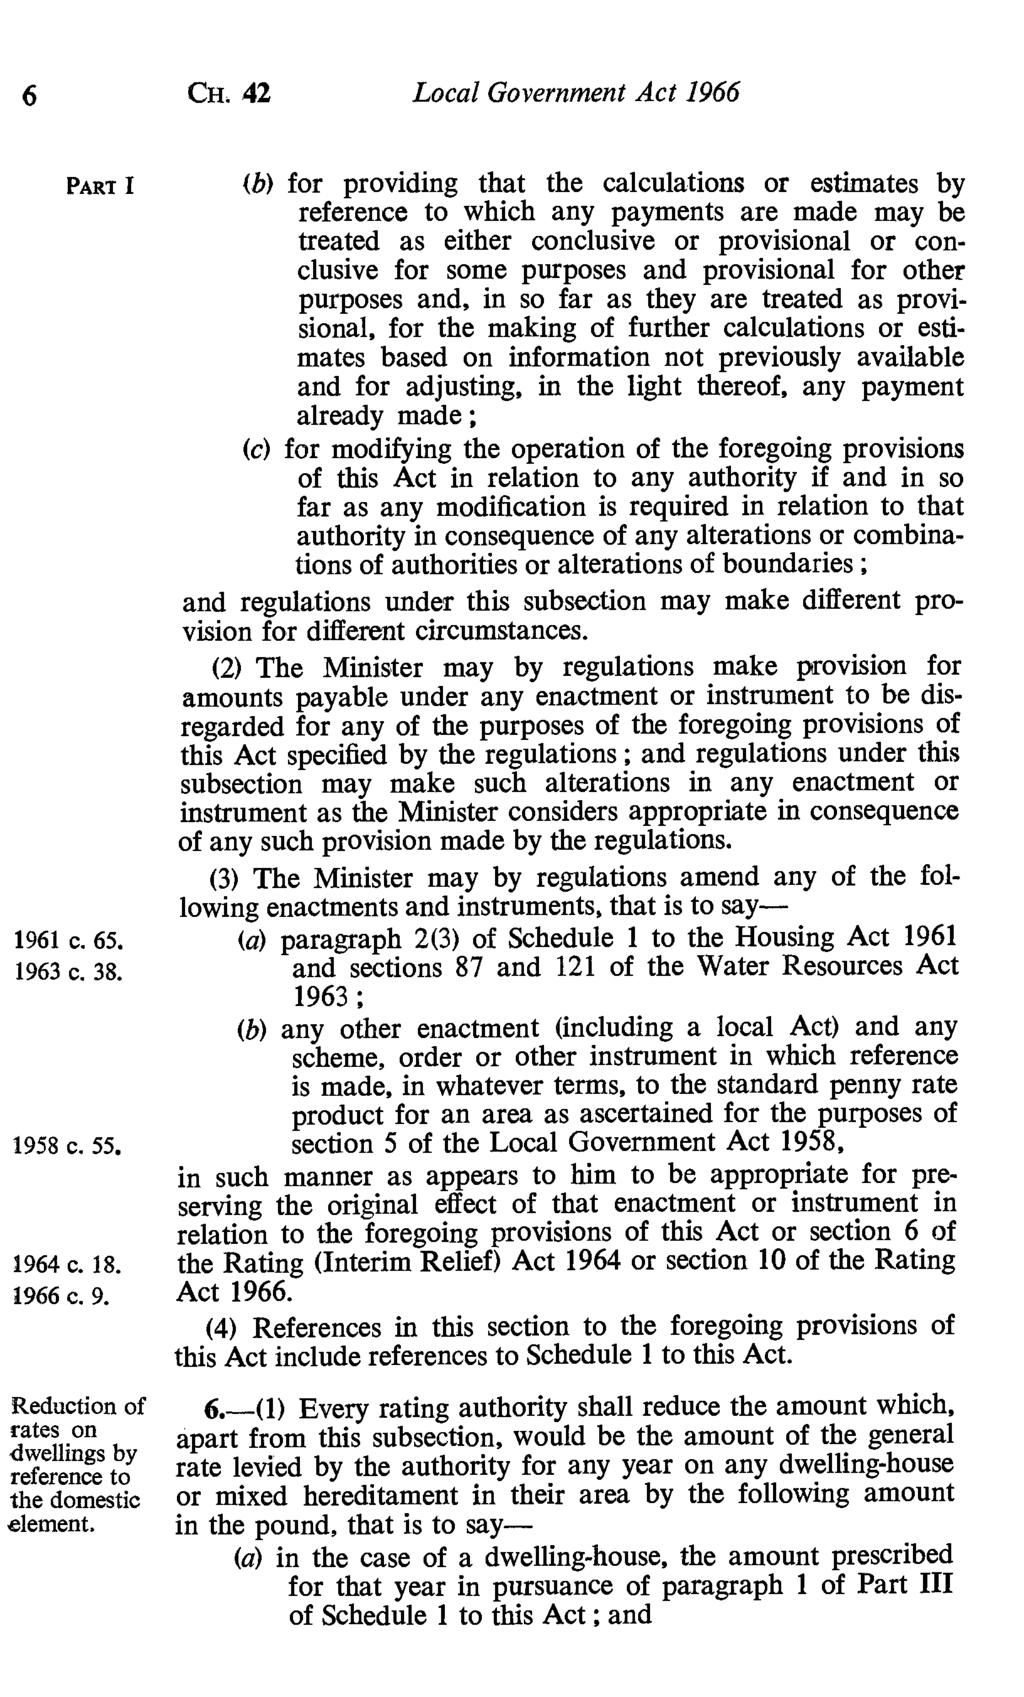 6 CH. 42 Local Government Act 1966 (b) for providing that the calculations or estimates by reference to which any payments are made may be treated as either conclusive or provisional or conclusive